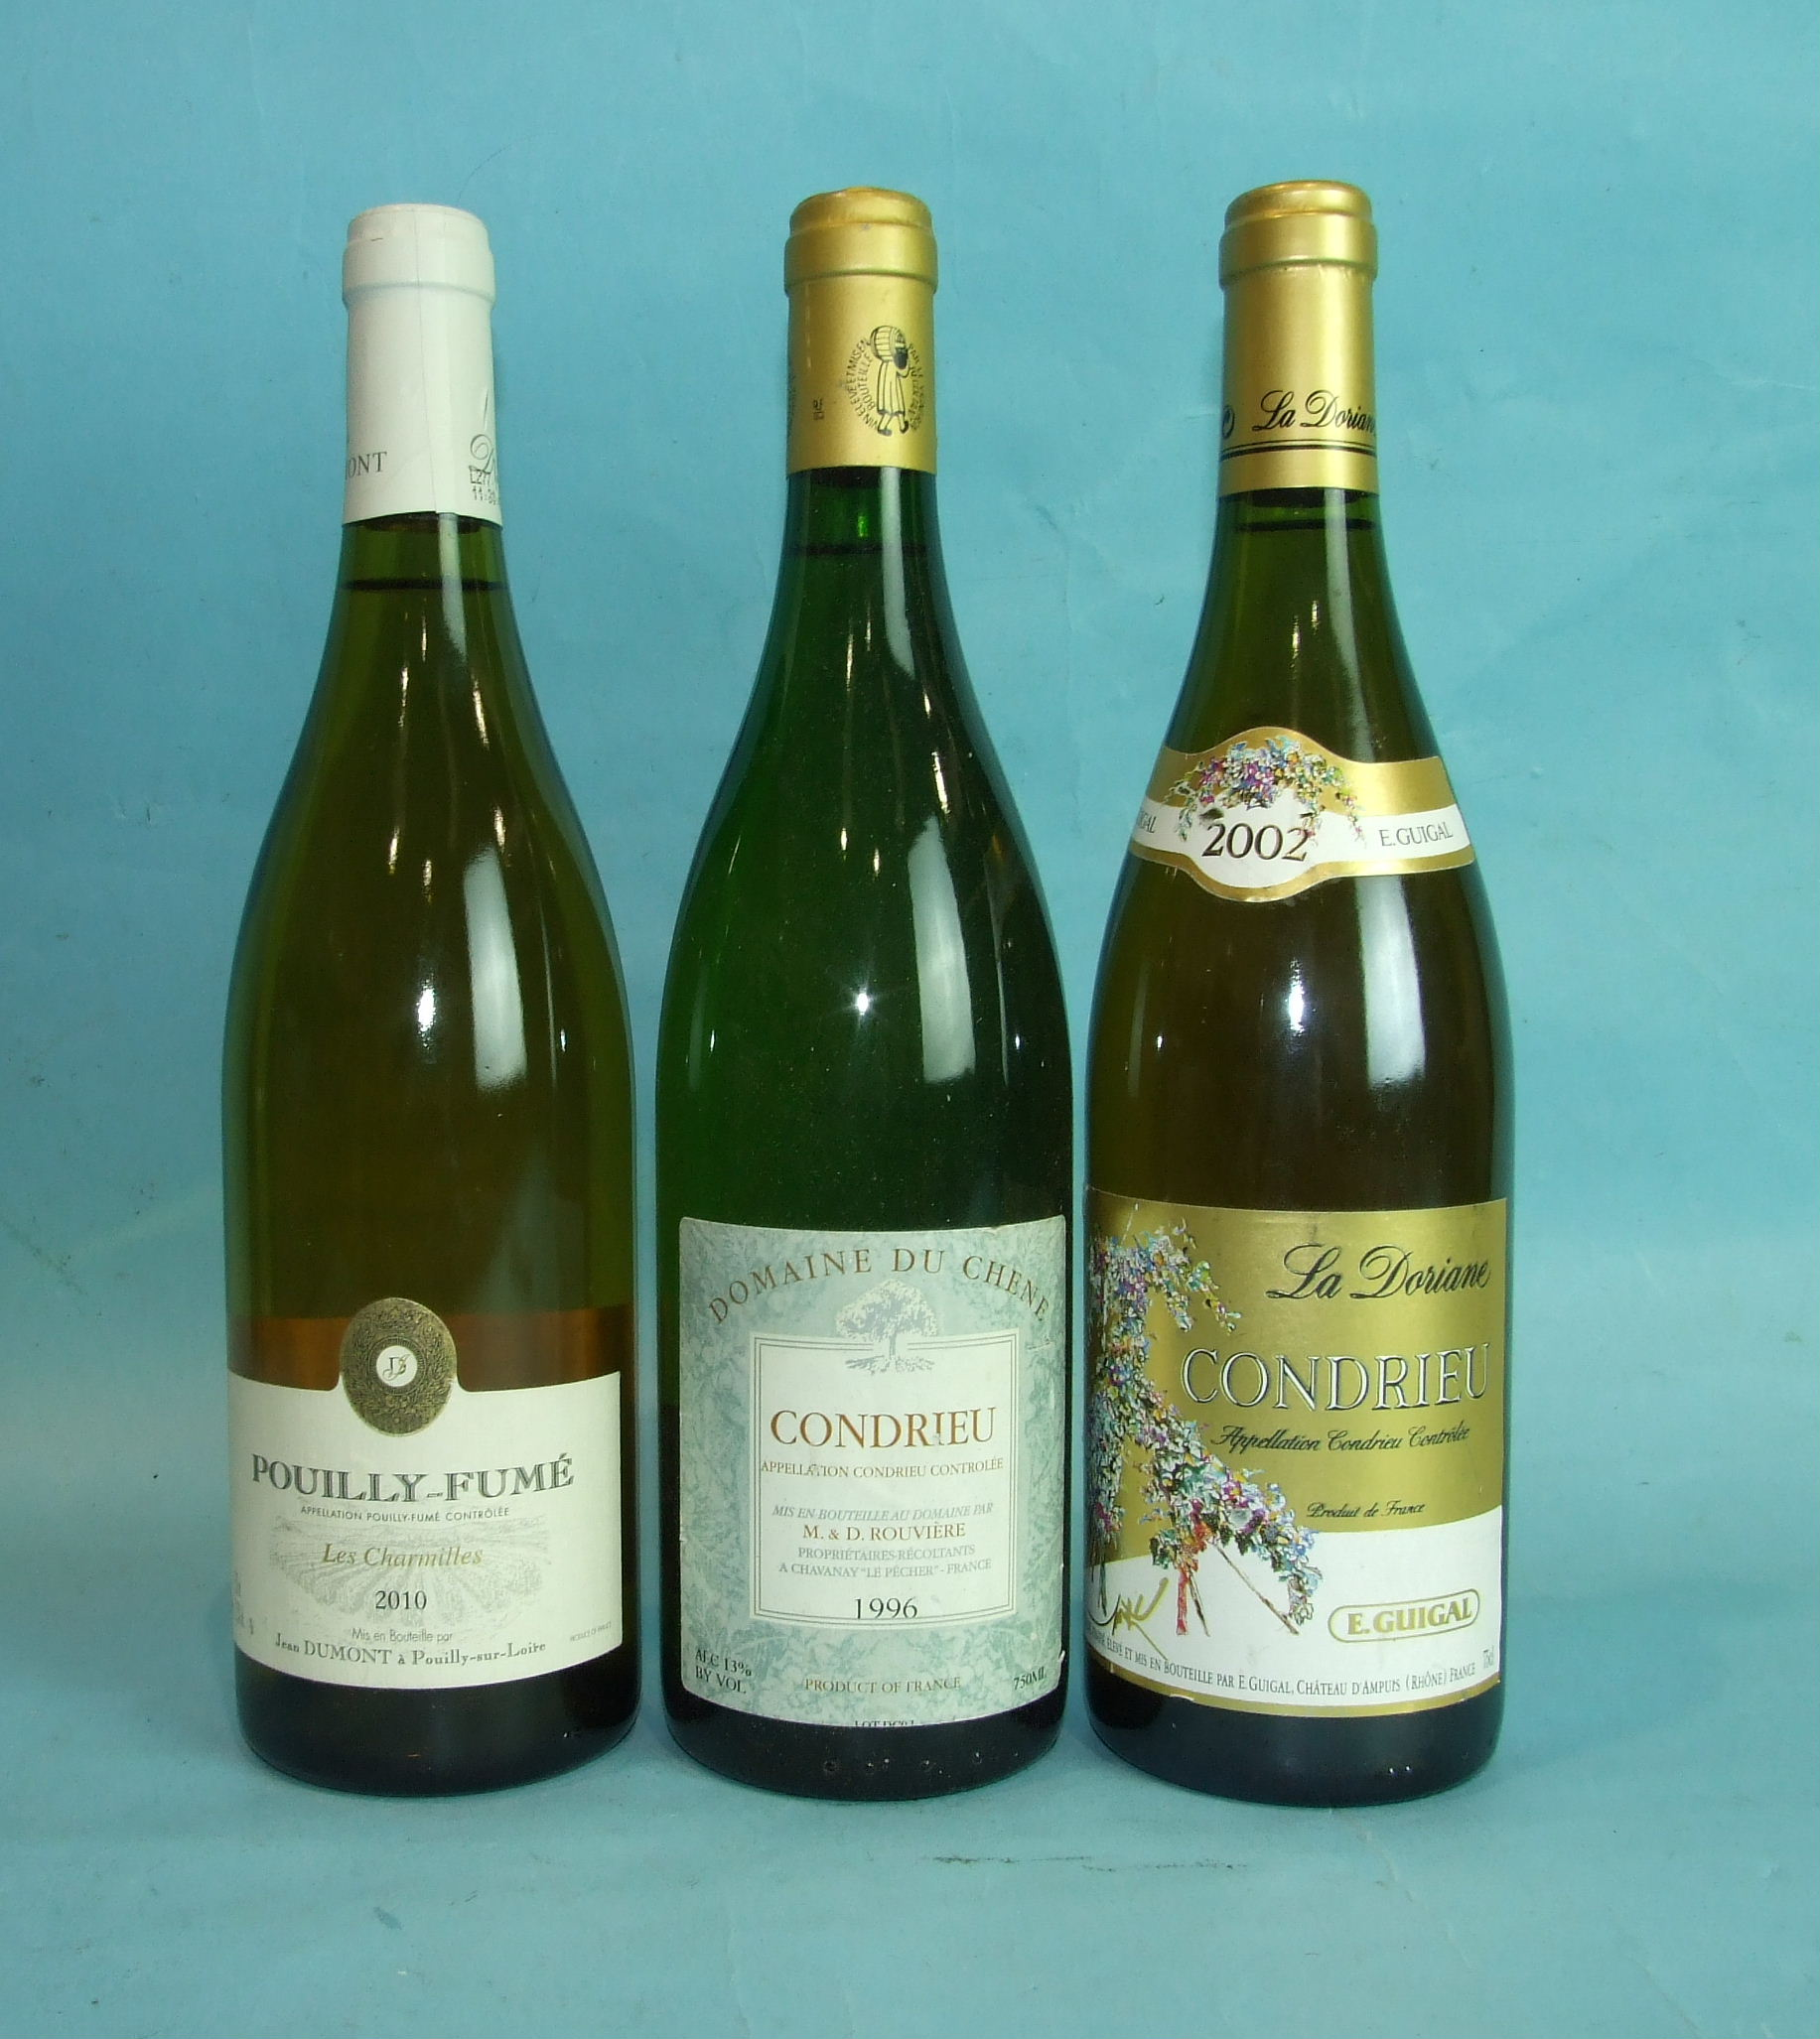 Lot 39 - La Domaine Condrieu 2002 E Guigal, one bottle and two other bottles of white wine, (3).